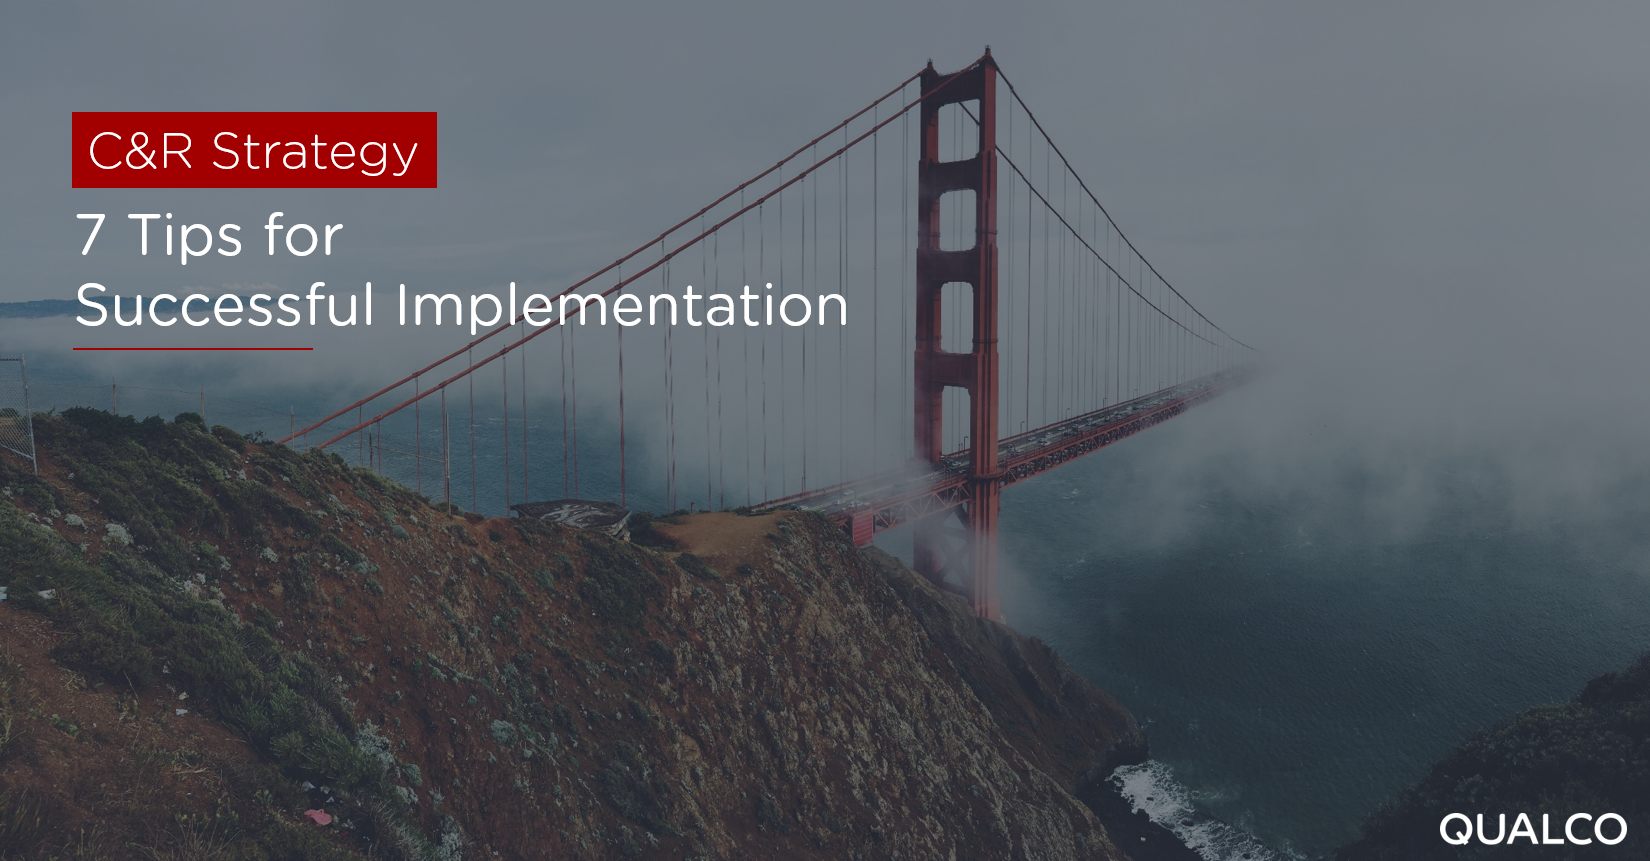 C&R Strategy: 7 Tips for Successful Implementation